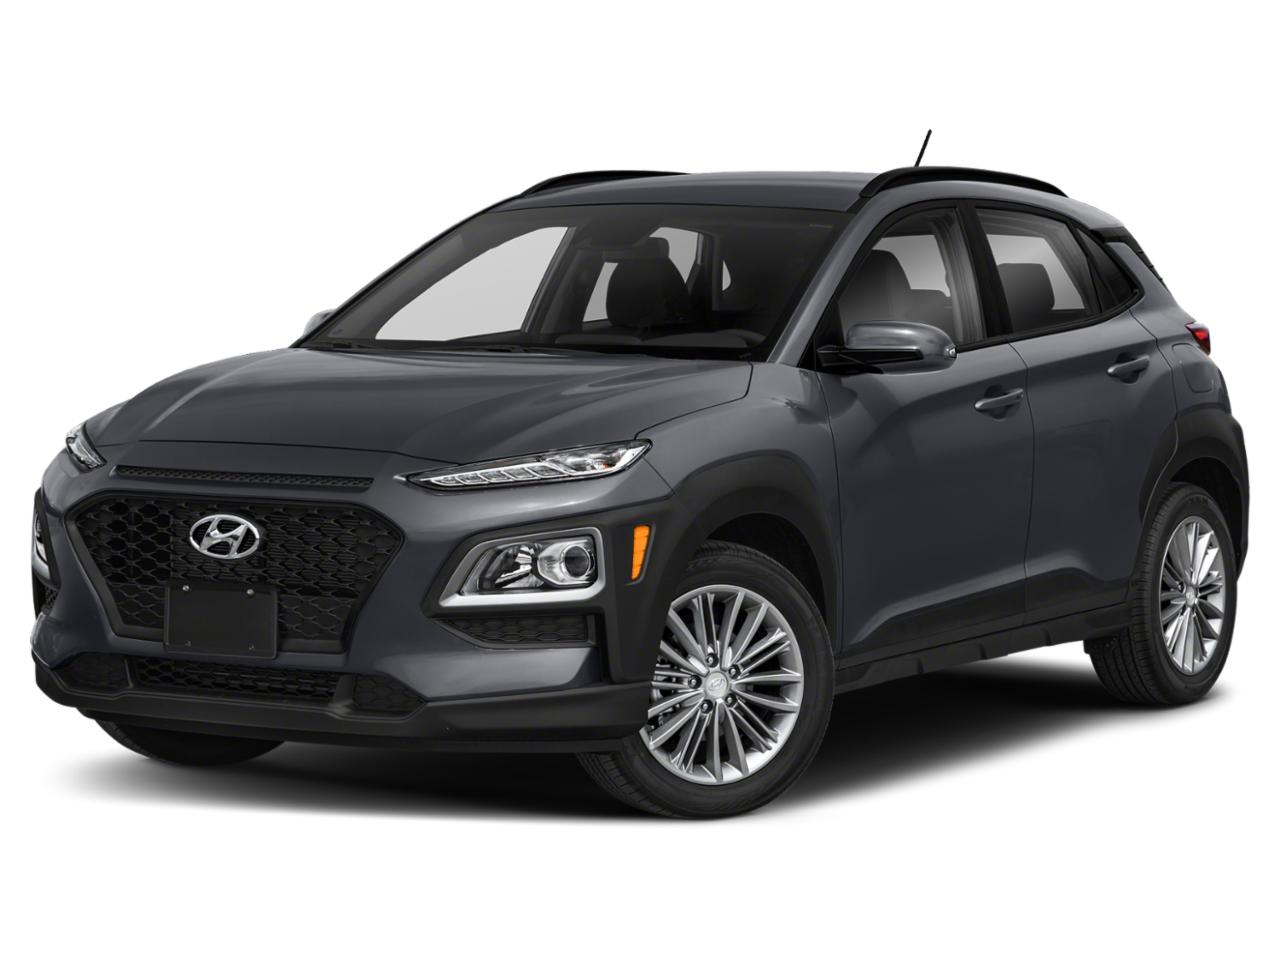 2019 Hyundai Kona Vehicle Photo in Spokane, WA 99207